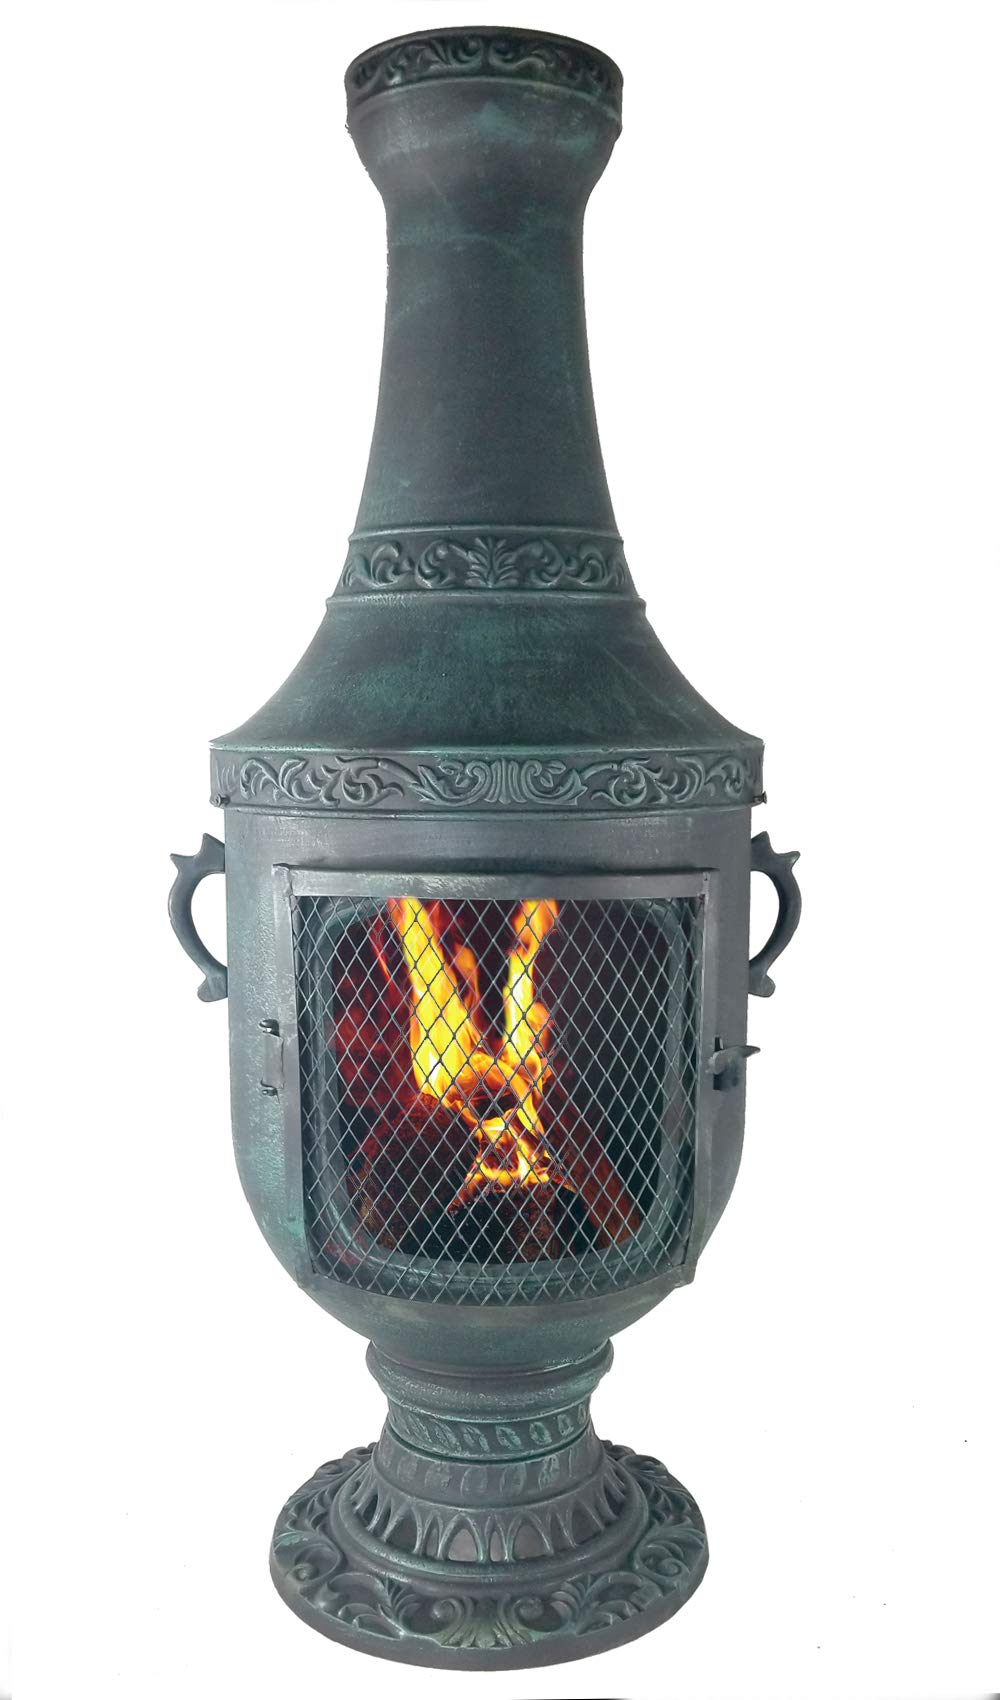 The Blue Rooster CAST Aluminum Venetian Chiminea with Gas kit and 10' Hose in Antique Green. Also Comes with a Free Year Round Cover. ... by The Blue Rooster